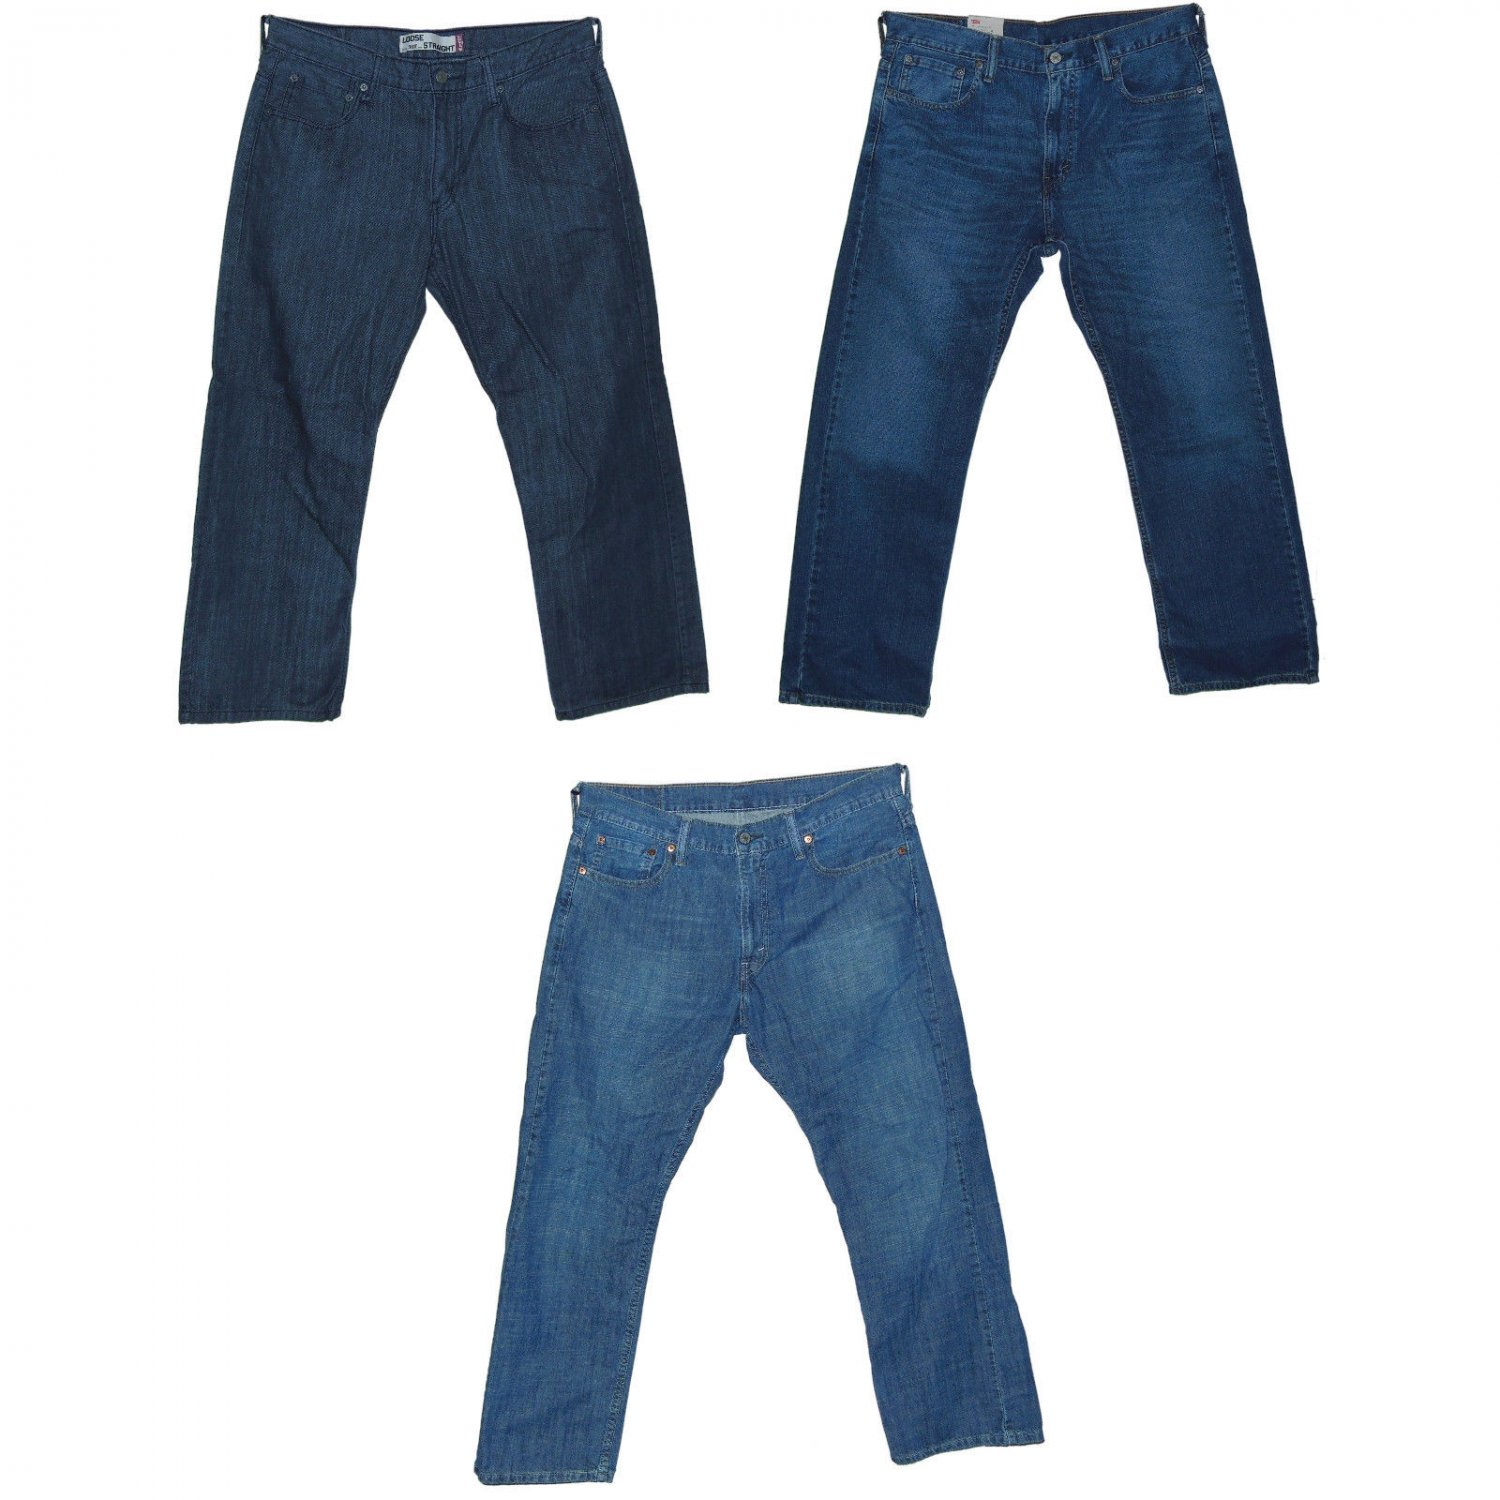 Levis 569 Mens Loose Straight Jeans 3-piece Lot 33 x 30 Indie Blue/Static/Grey